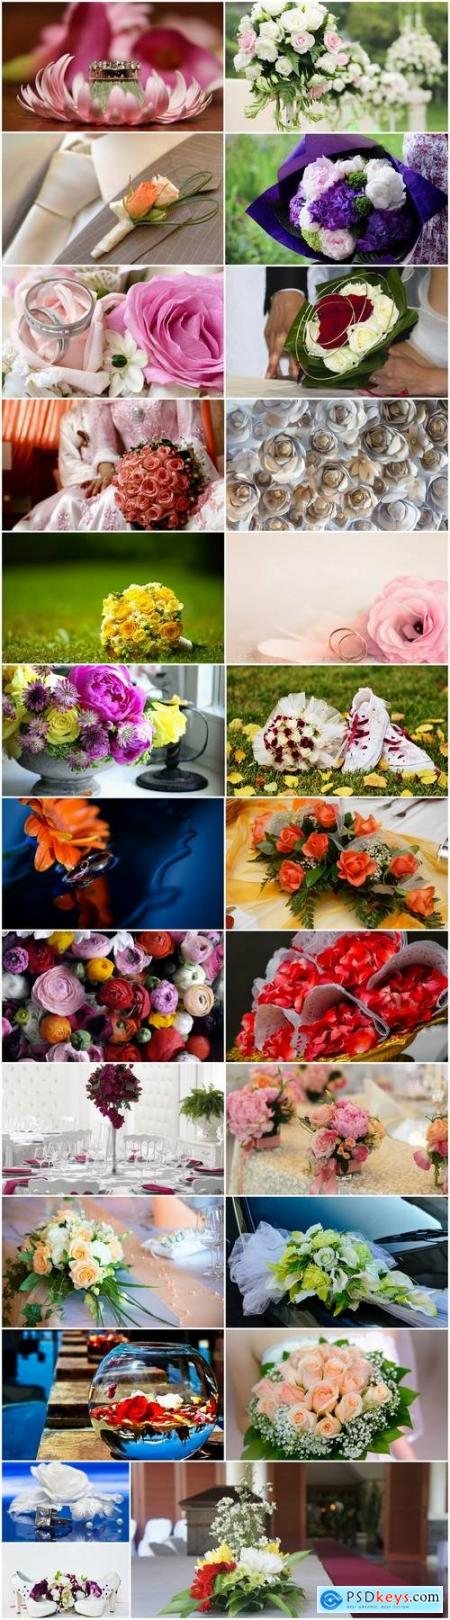 Wedding flower interior ring 25 HQ Jpeg